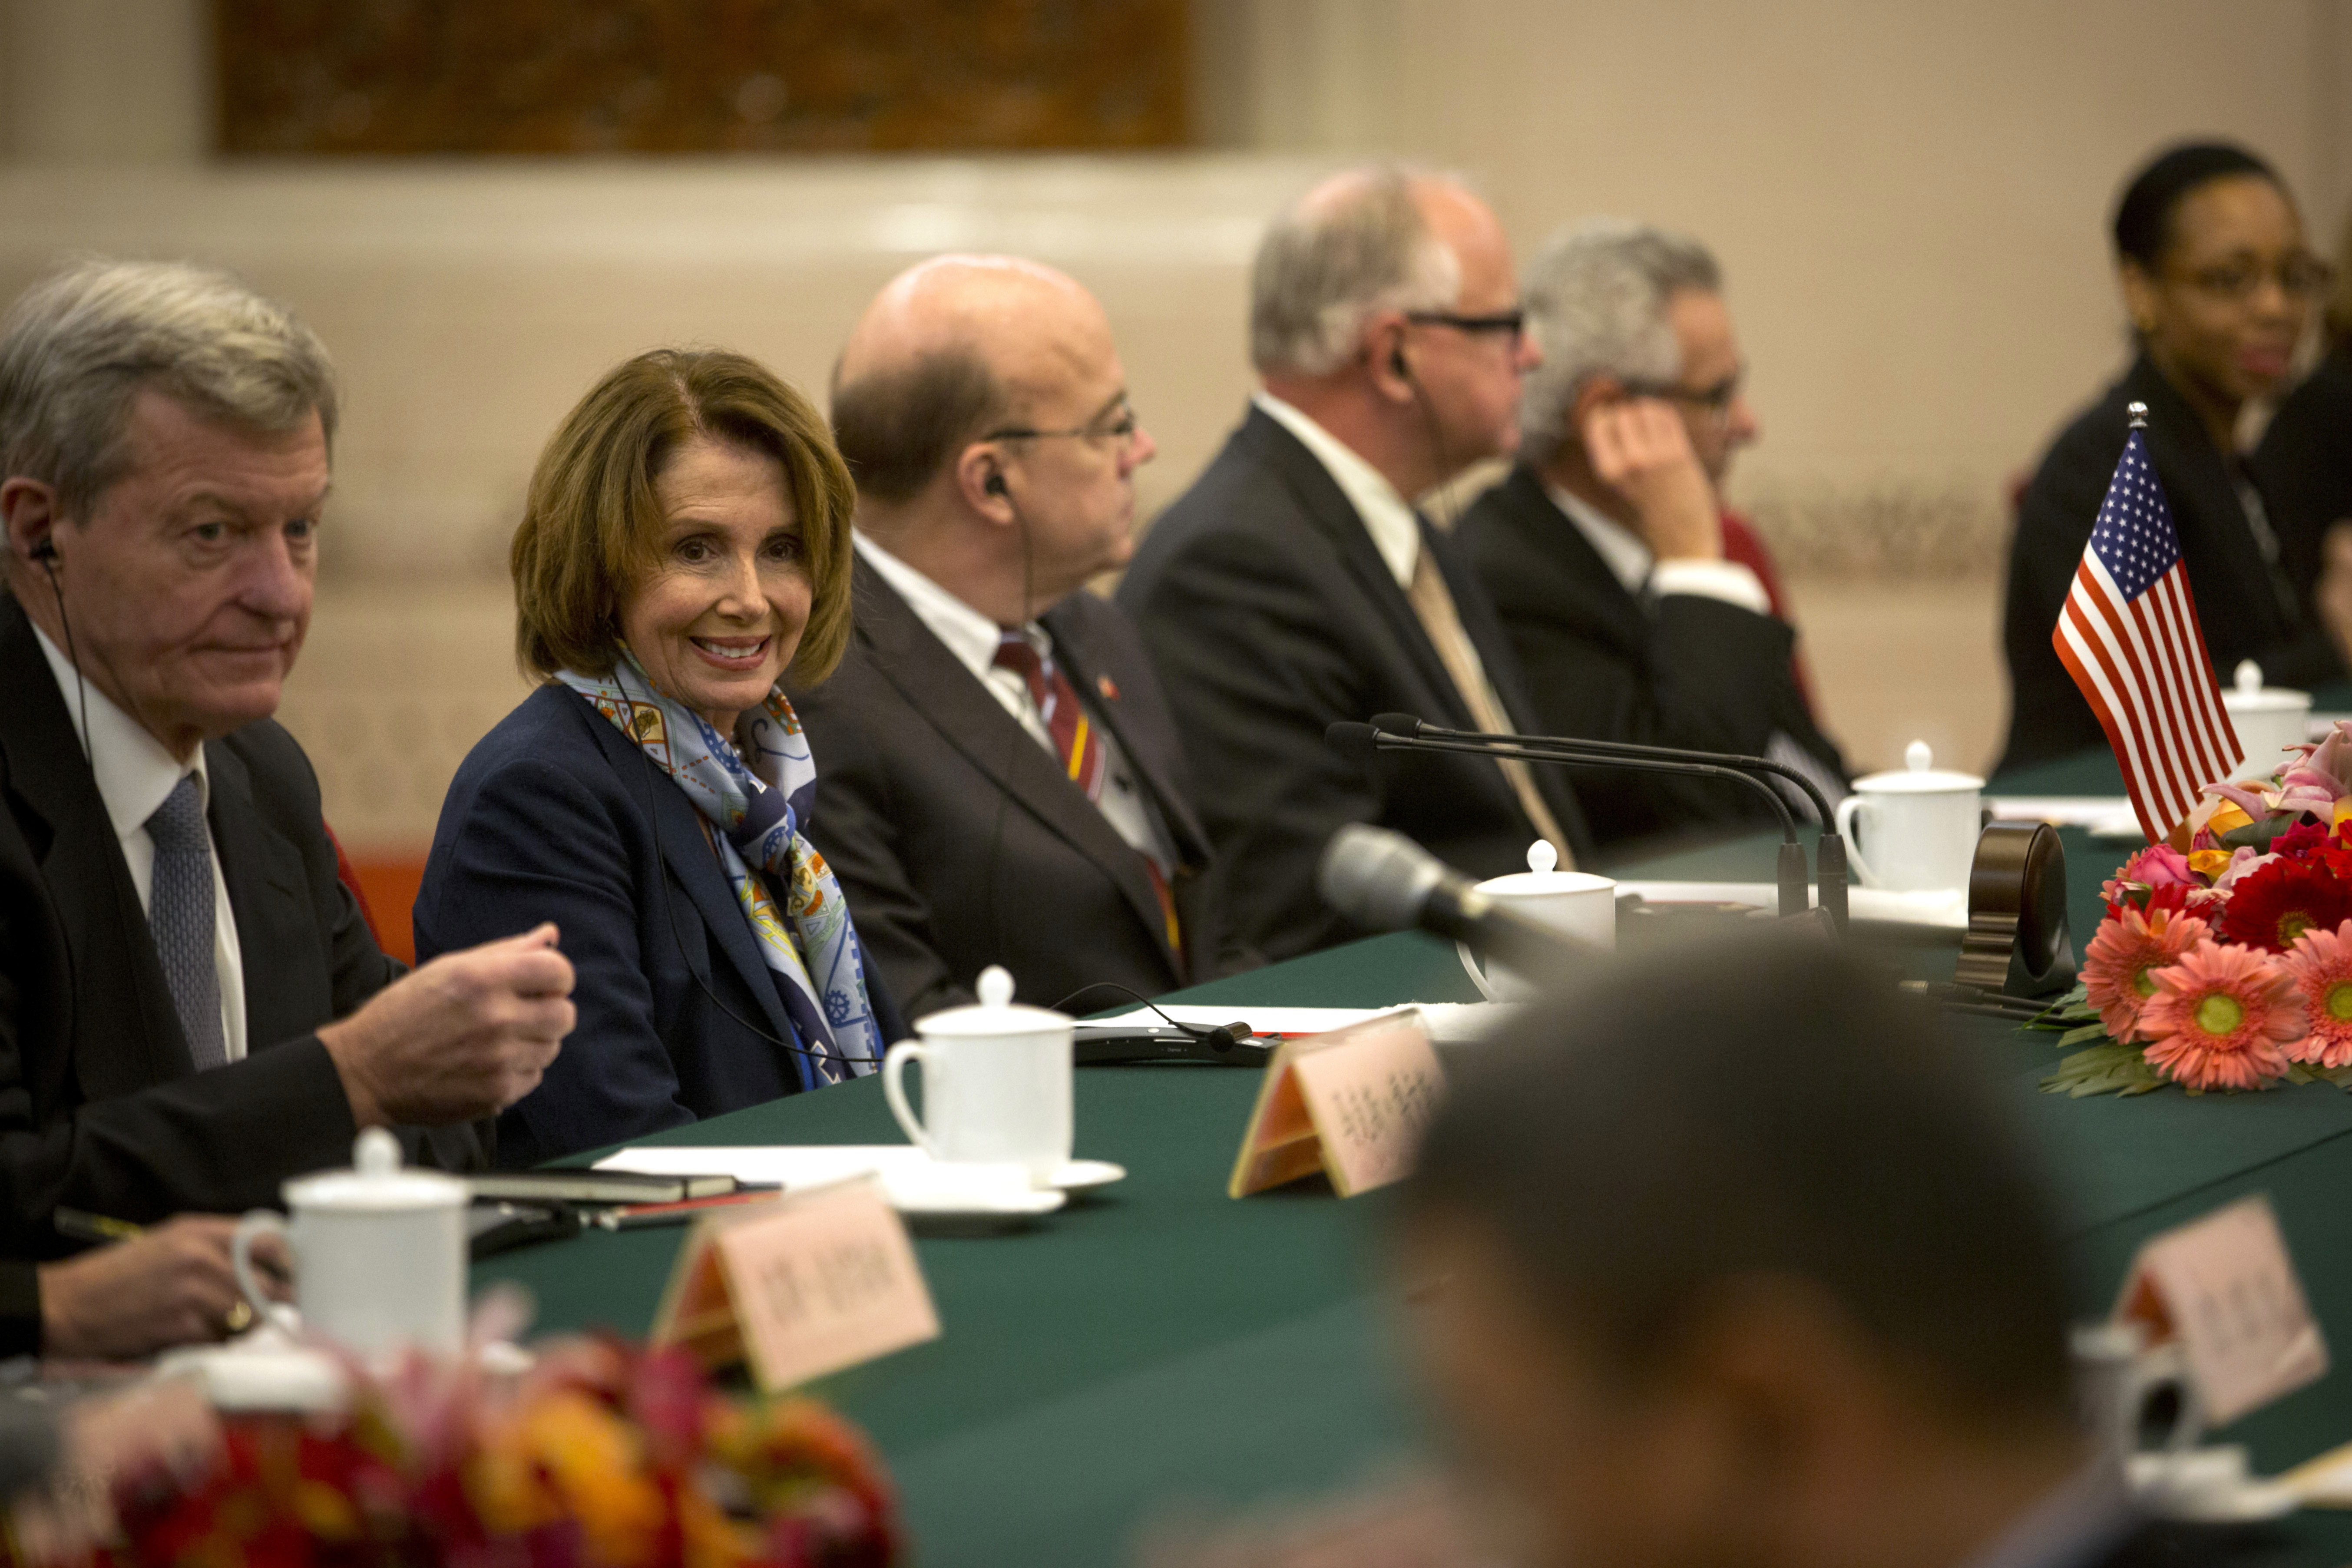 U.S. House Minority Leader Nancy Pelosi of Calif., second from left, smiles during a bilateral meeting with Zhang Ping, vice chairman of China's National People's Congress, at the Great Hall of the People in Beijing, Nov. 12, 2015.